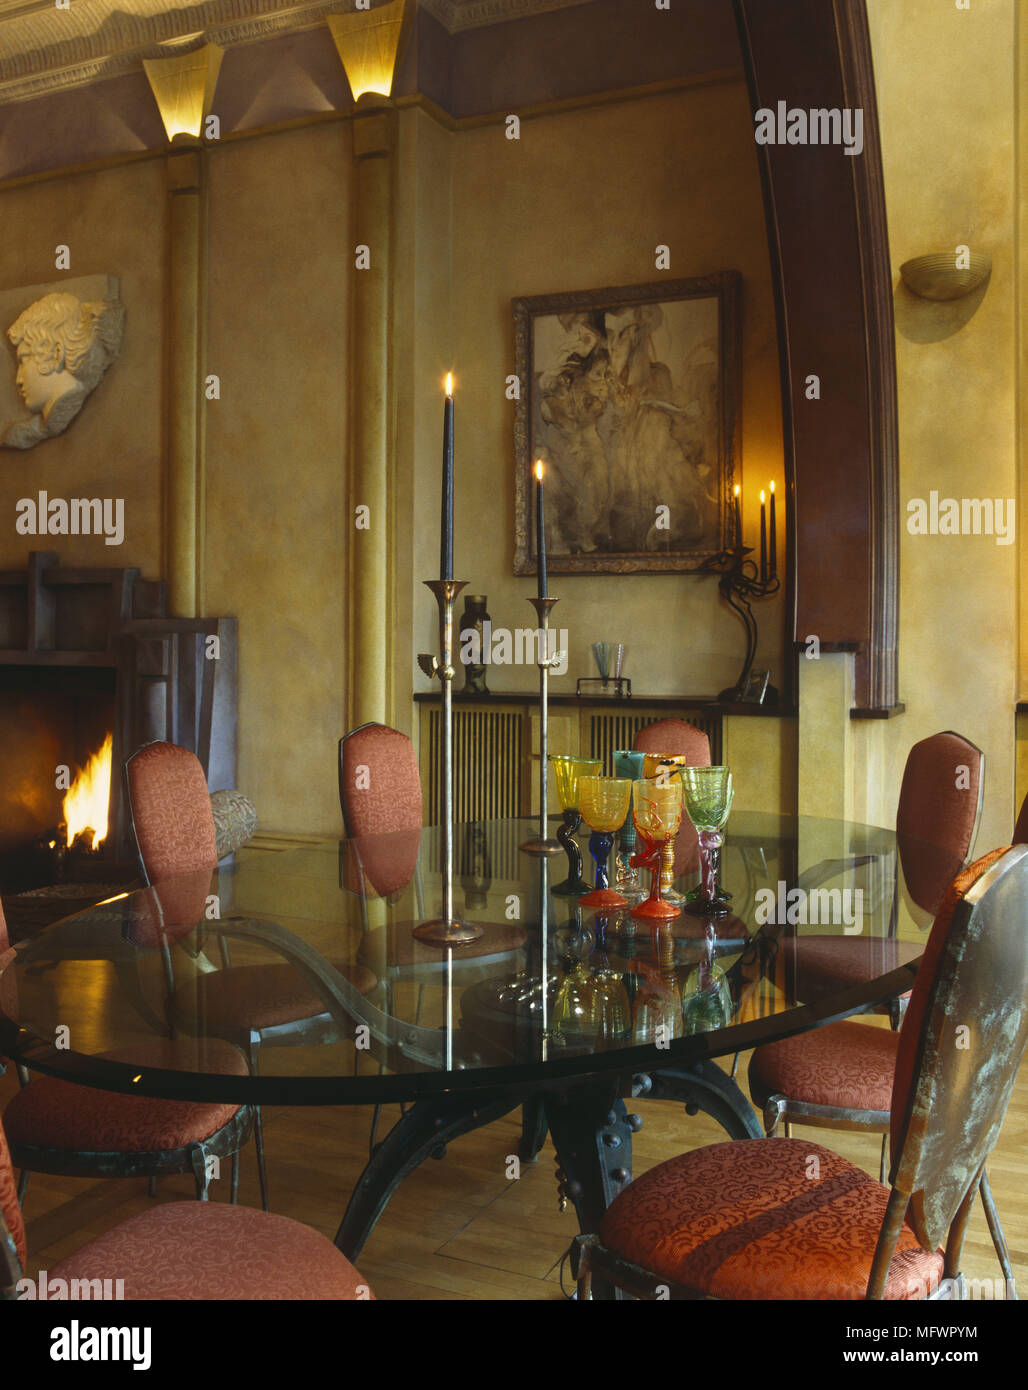 Glass Topped Dining Table With Upholstered Red Chairs Next To Open Fireplace Stock Photo Alamy